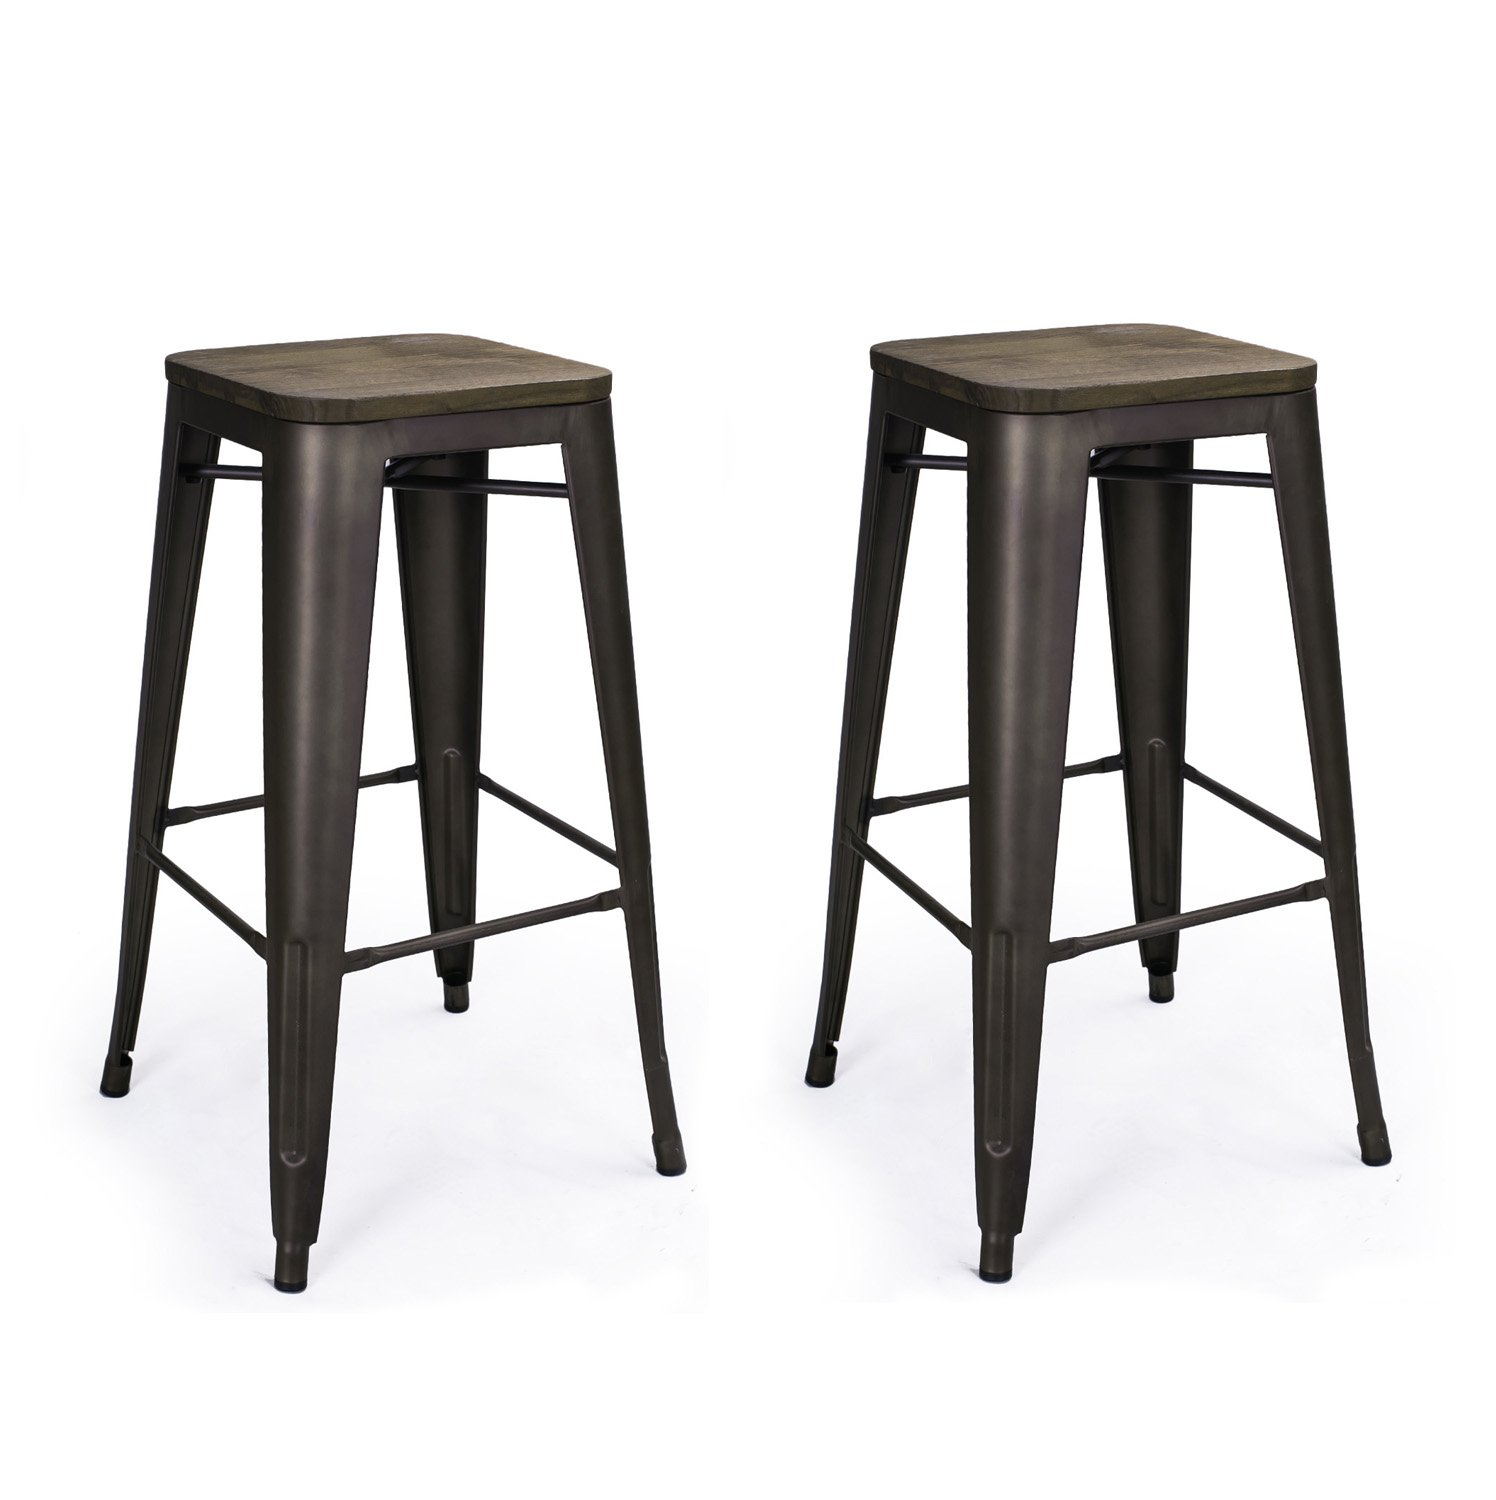 amazon com adeco 30 high metal bar stools vintage wood top seat